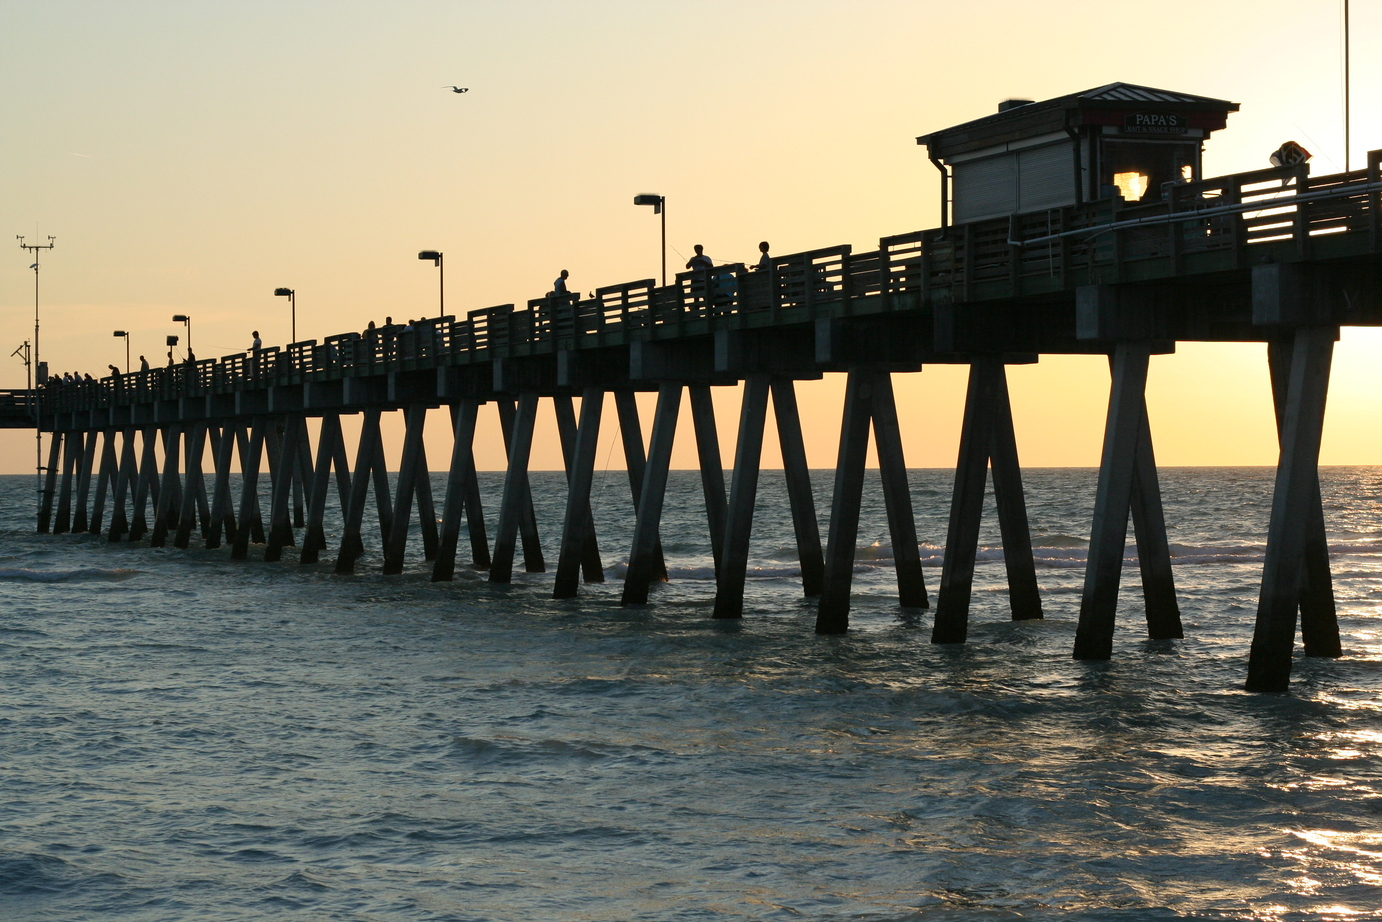 Venice, FL : Sharky's Pier